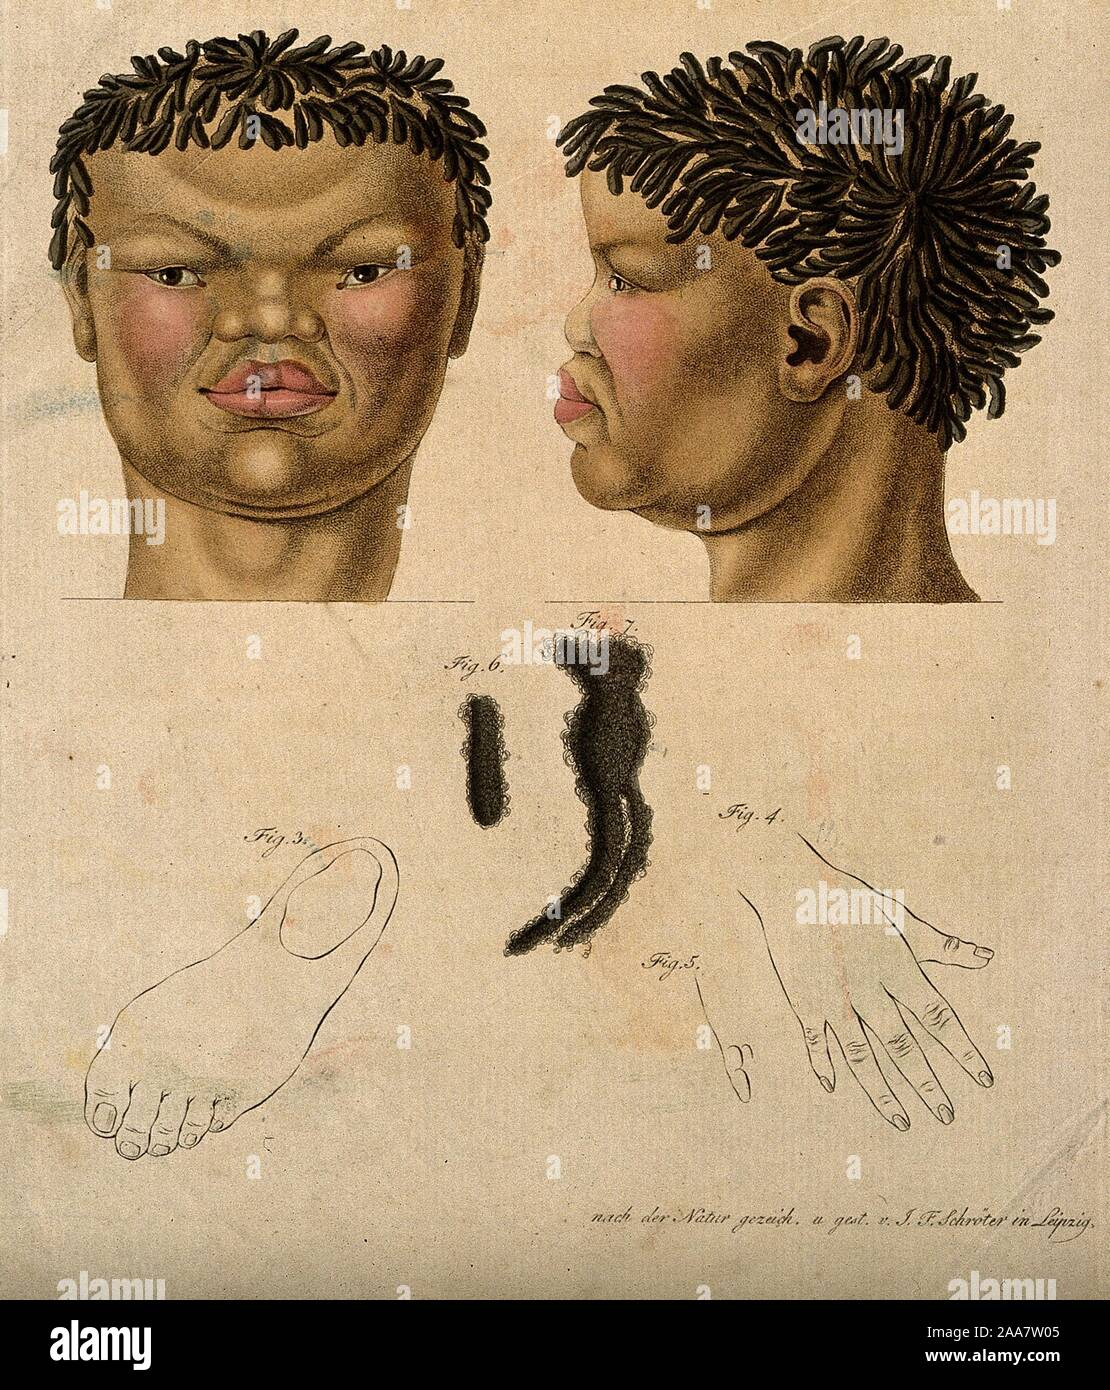 Head Neck Hand Foot And Hair Of A Non European Woman Coloured Engraving By J F Schrter Ca 1830 Jpg 2aa7w05 Stock Photo Alamy